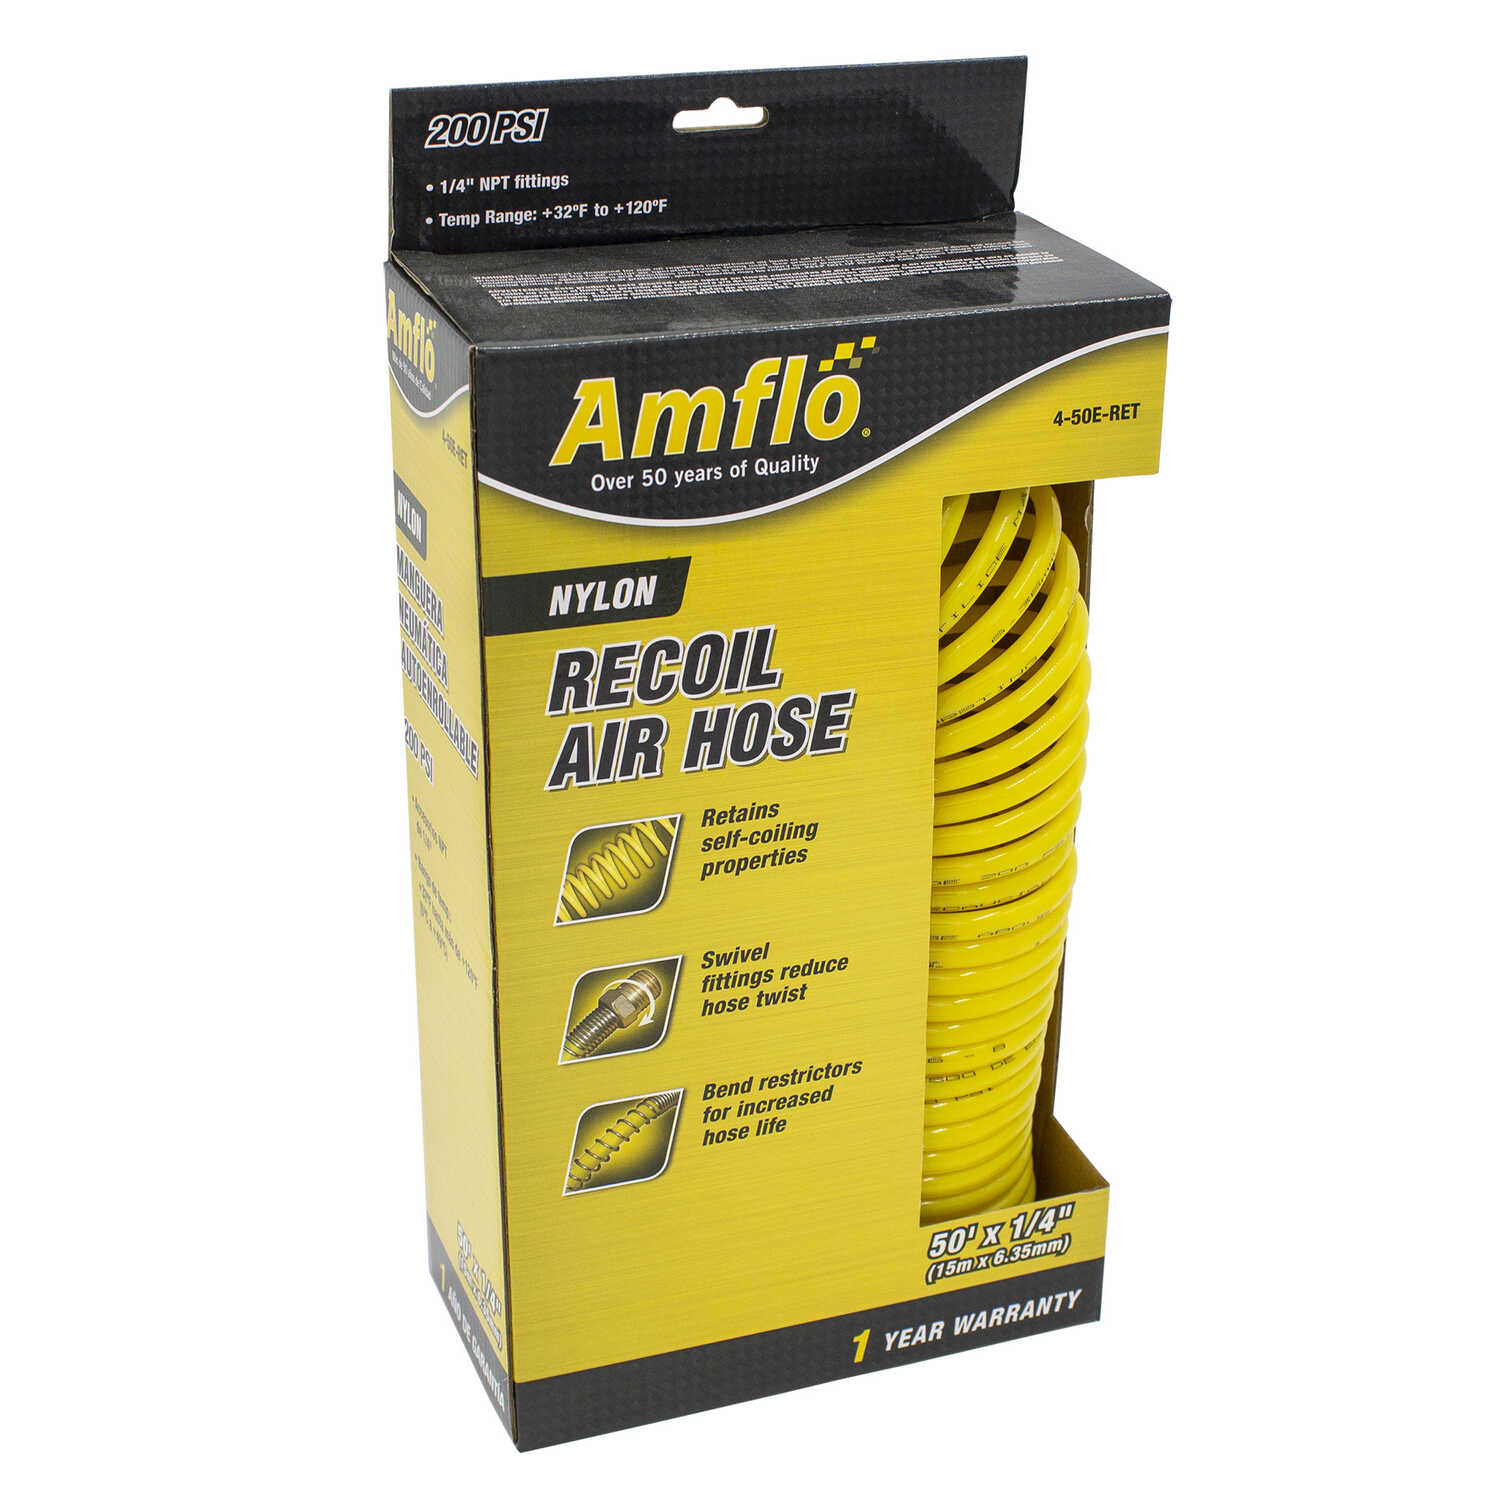 Amflo  50 ft. L x 1/4 in.  Recoil Air Hose  Nylon  200 psi Yellow